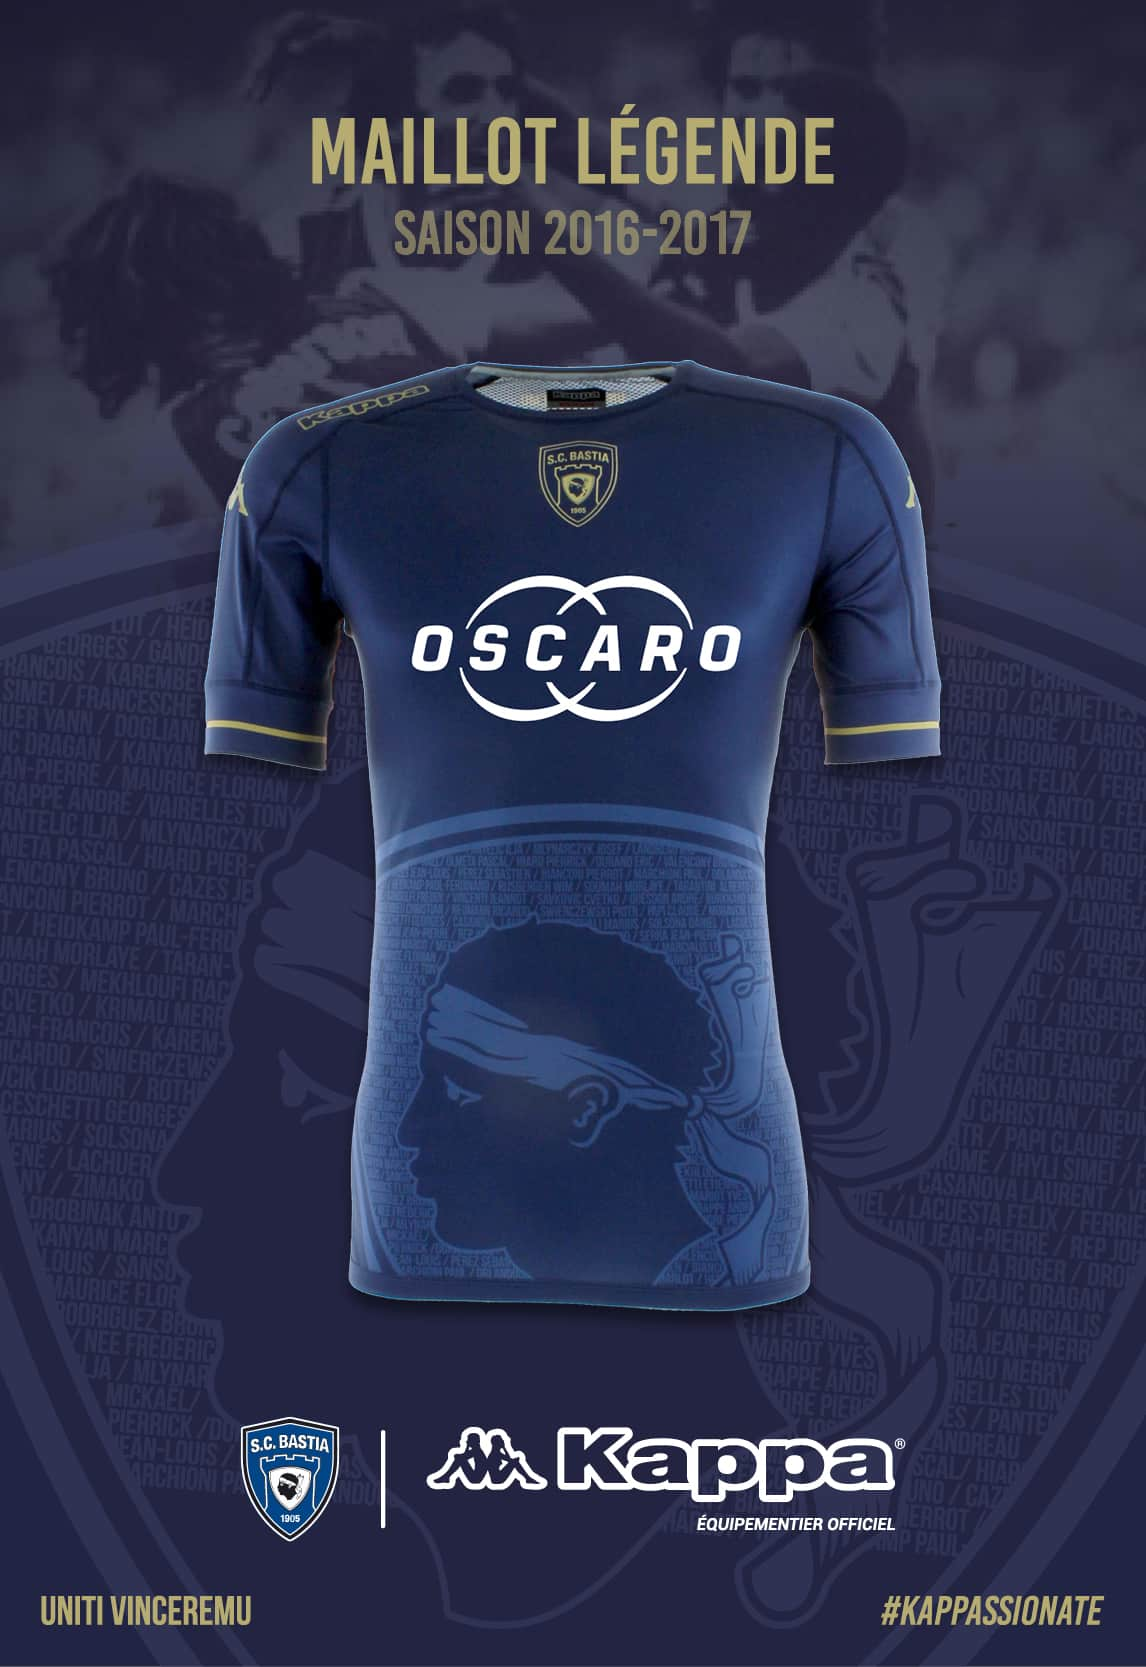 maillot-legende-sc-bastia-2016-2017-away